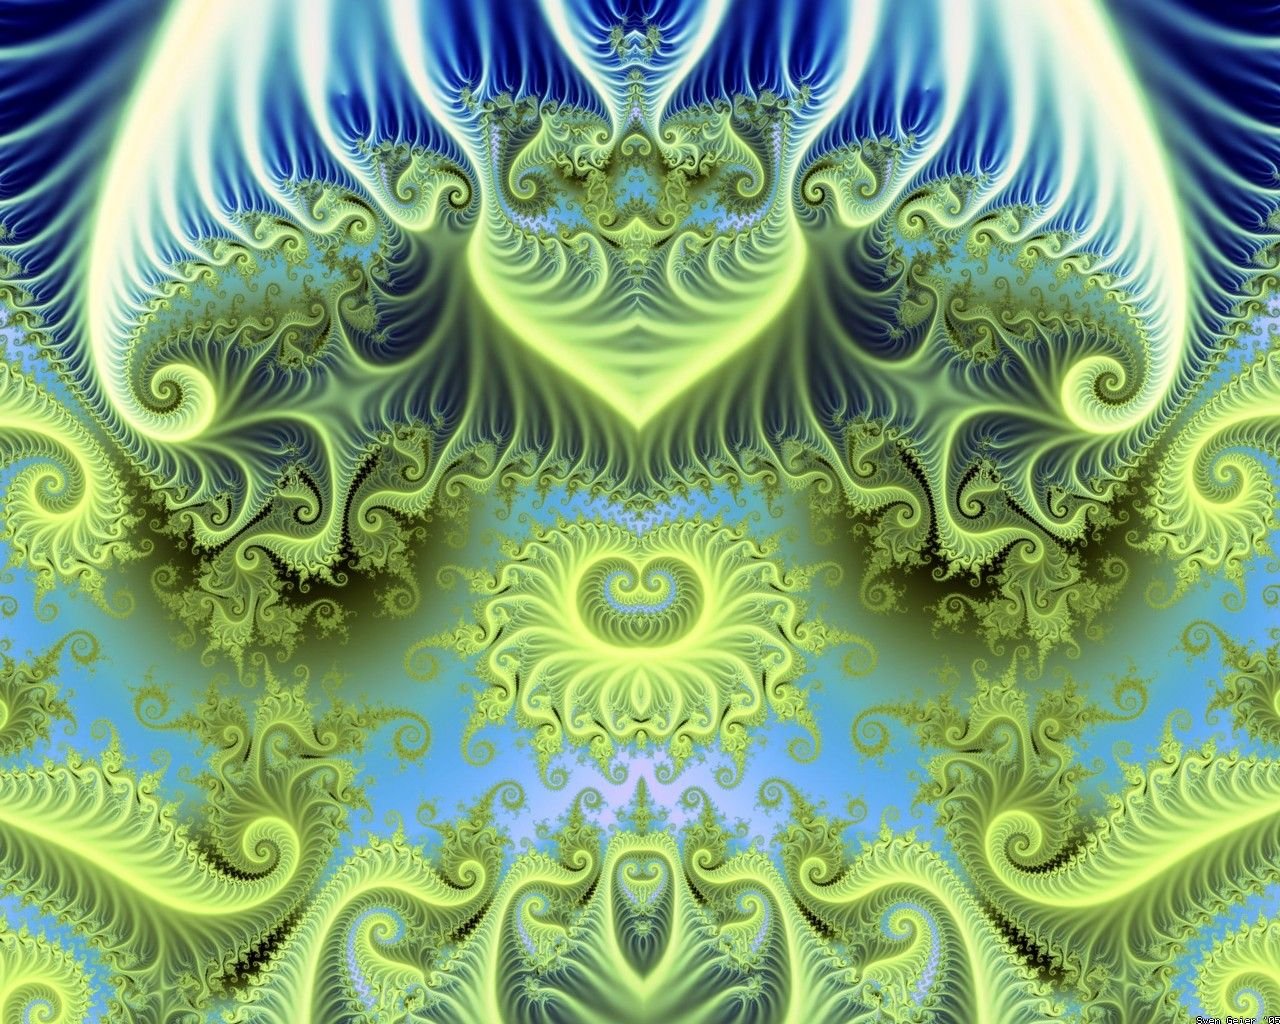 trippy nature wallpaper wallpapersafari